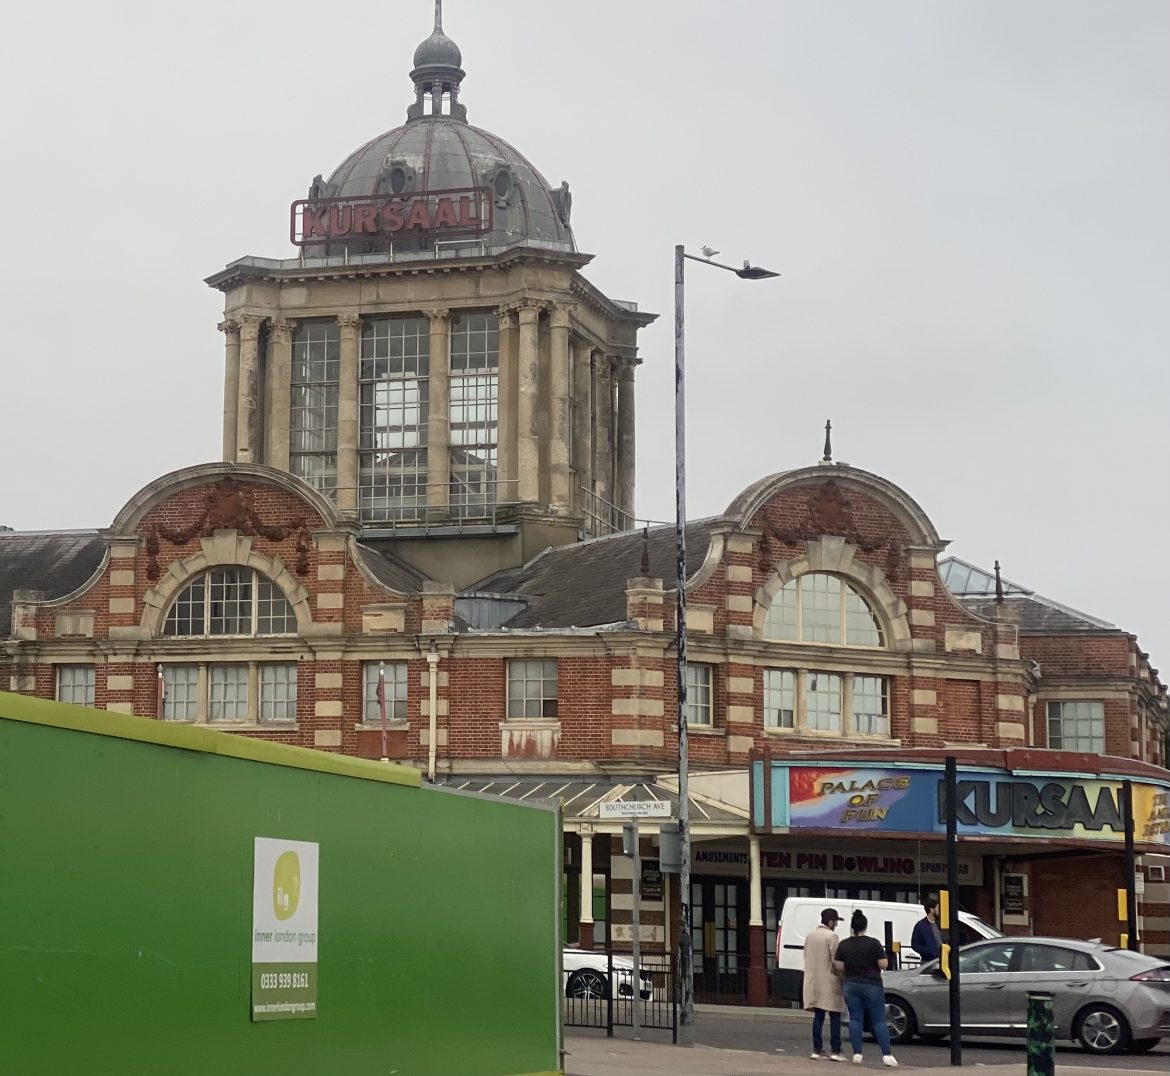 The Kursaal in Southend credit Kevin Rushby